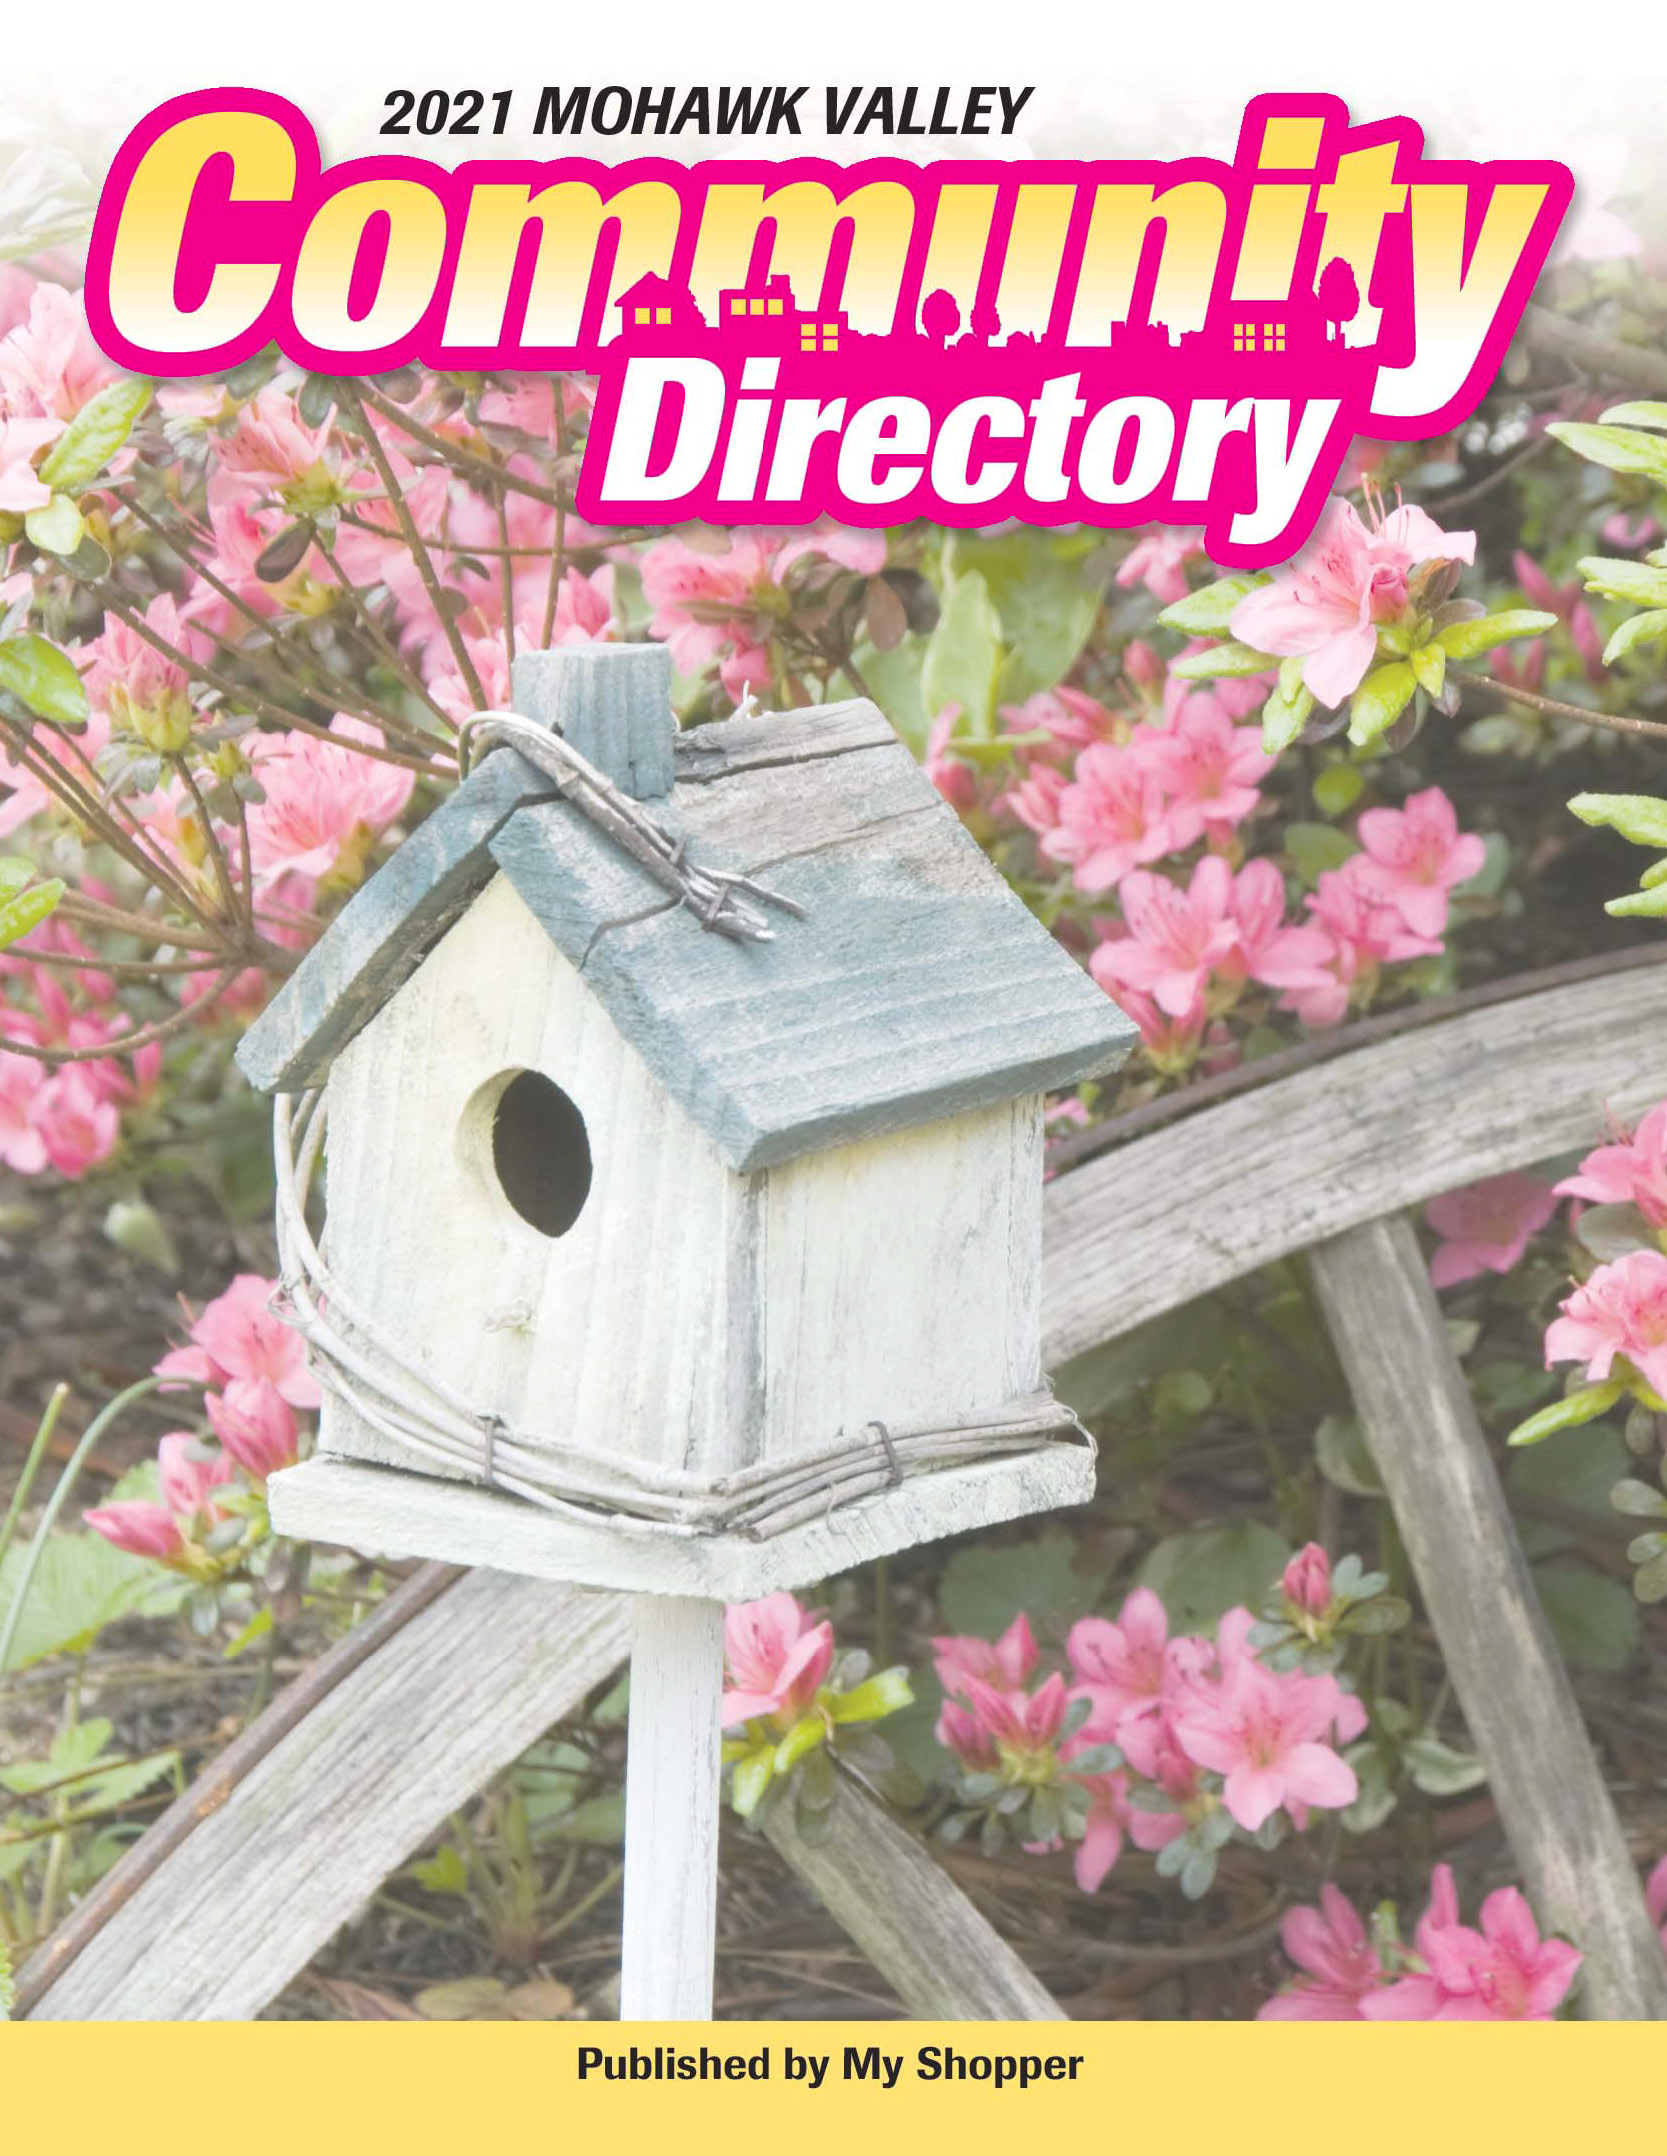 Mohawk Valley Community Directory 2021